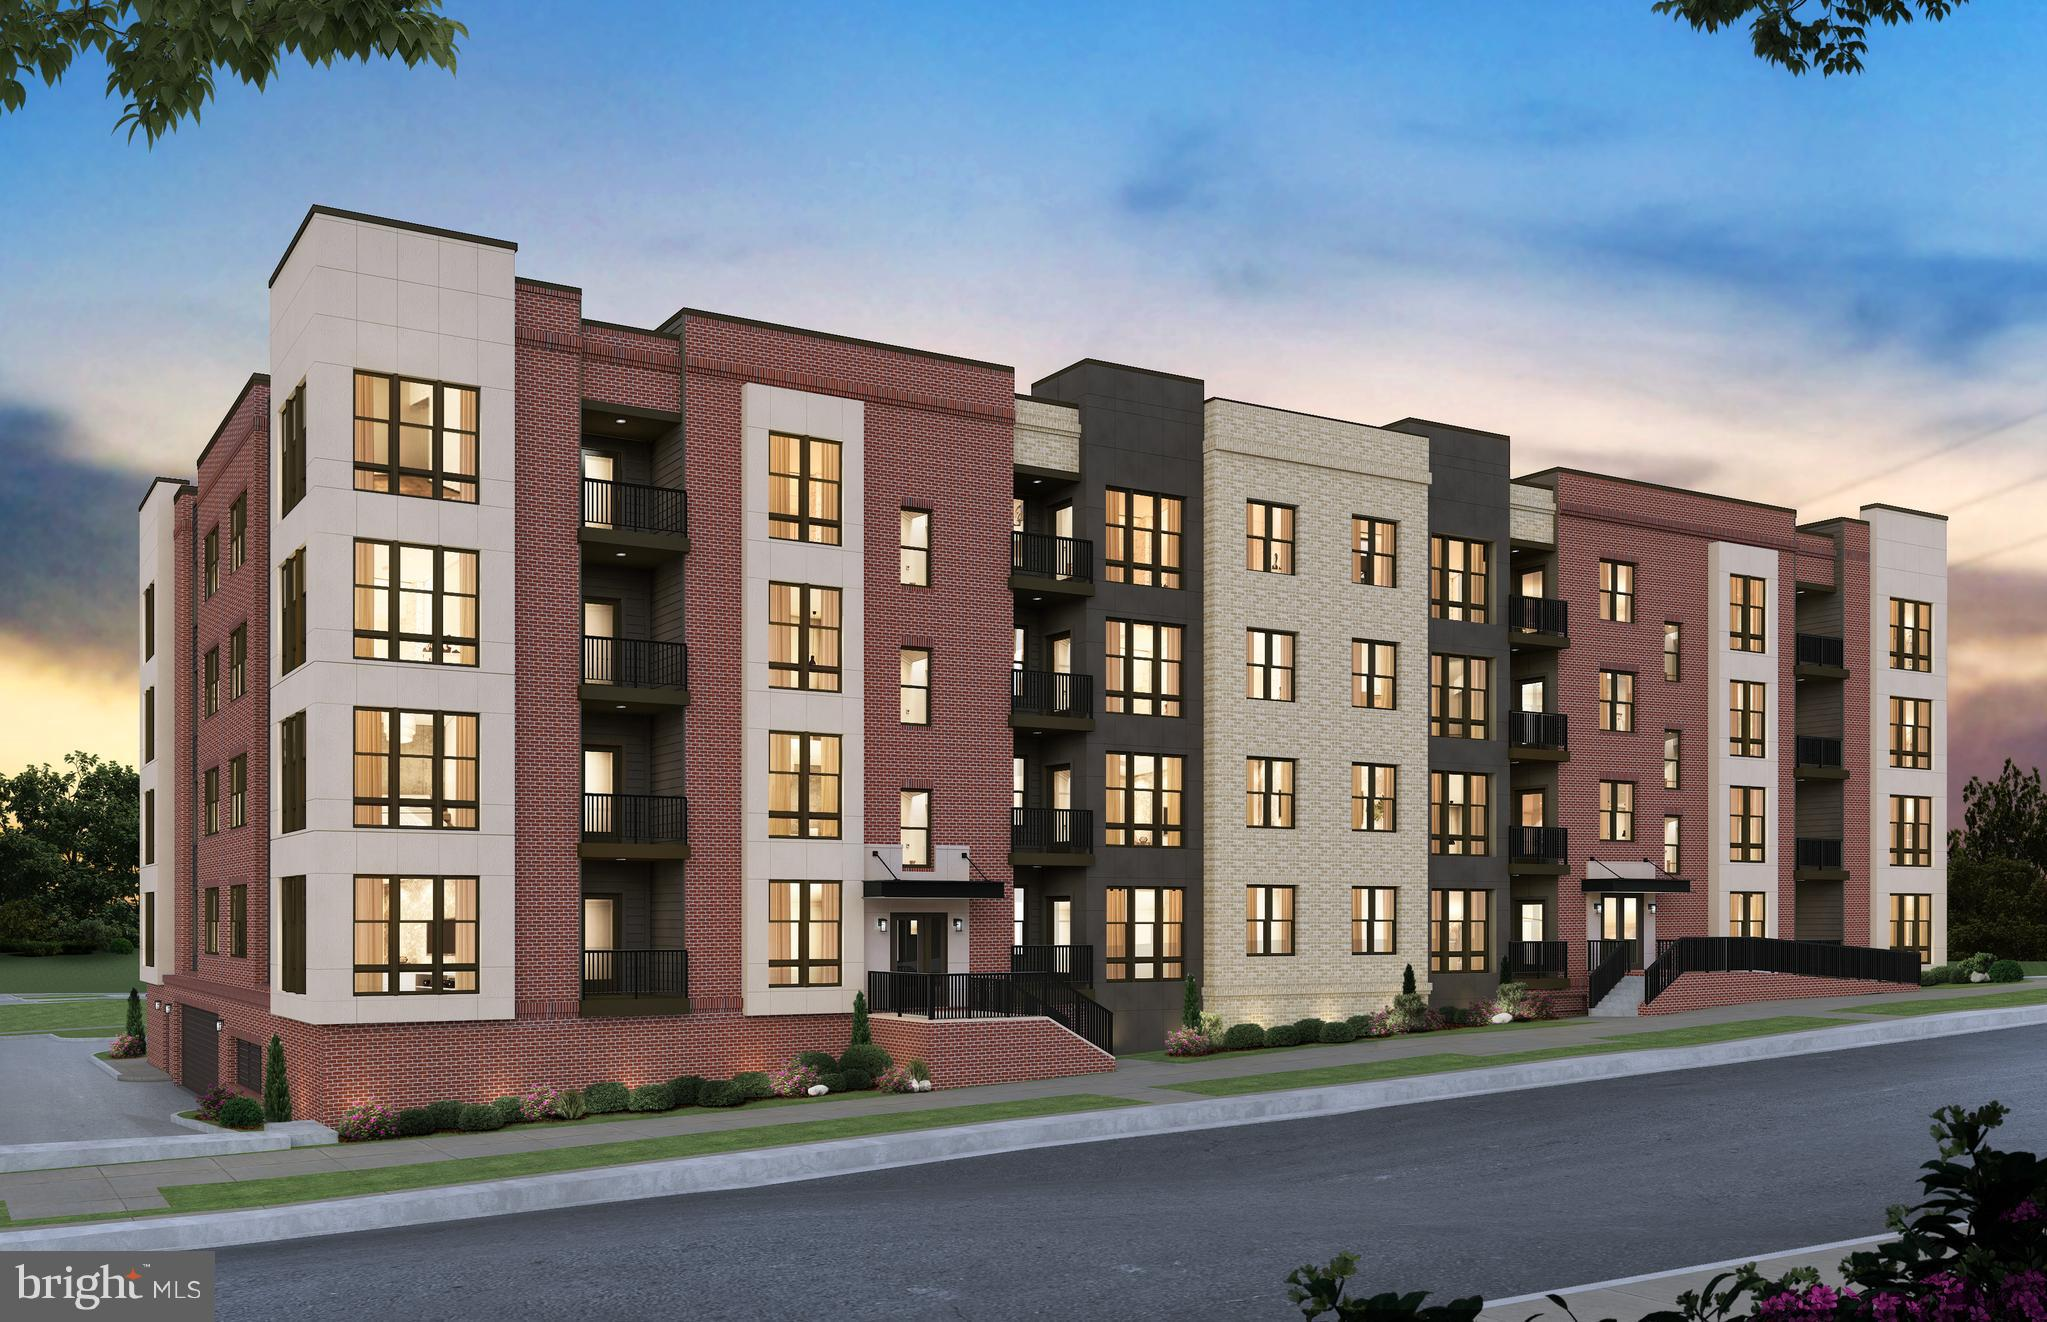 Reston's hottest new metro community just footsteps from Wiehle Metro Station. Live an upscale lifestyle close to vibrant nightlife, outdoor recreation & more! This 2-bedroom condo is luxurious with an oversized owner's suite, owner's bath & huge walk-in closet. The secondary bedroom is impressive with a large walk-in closet and beautiful bath. The den provides extra space for working from home!